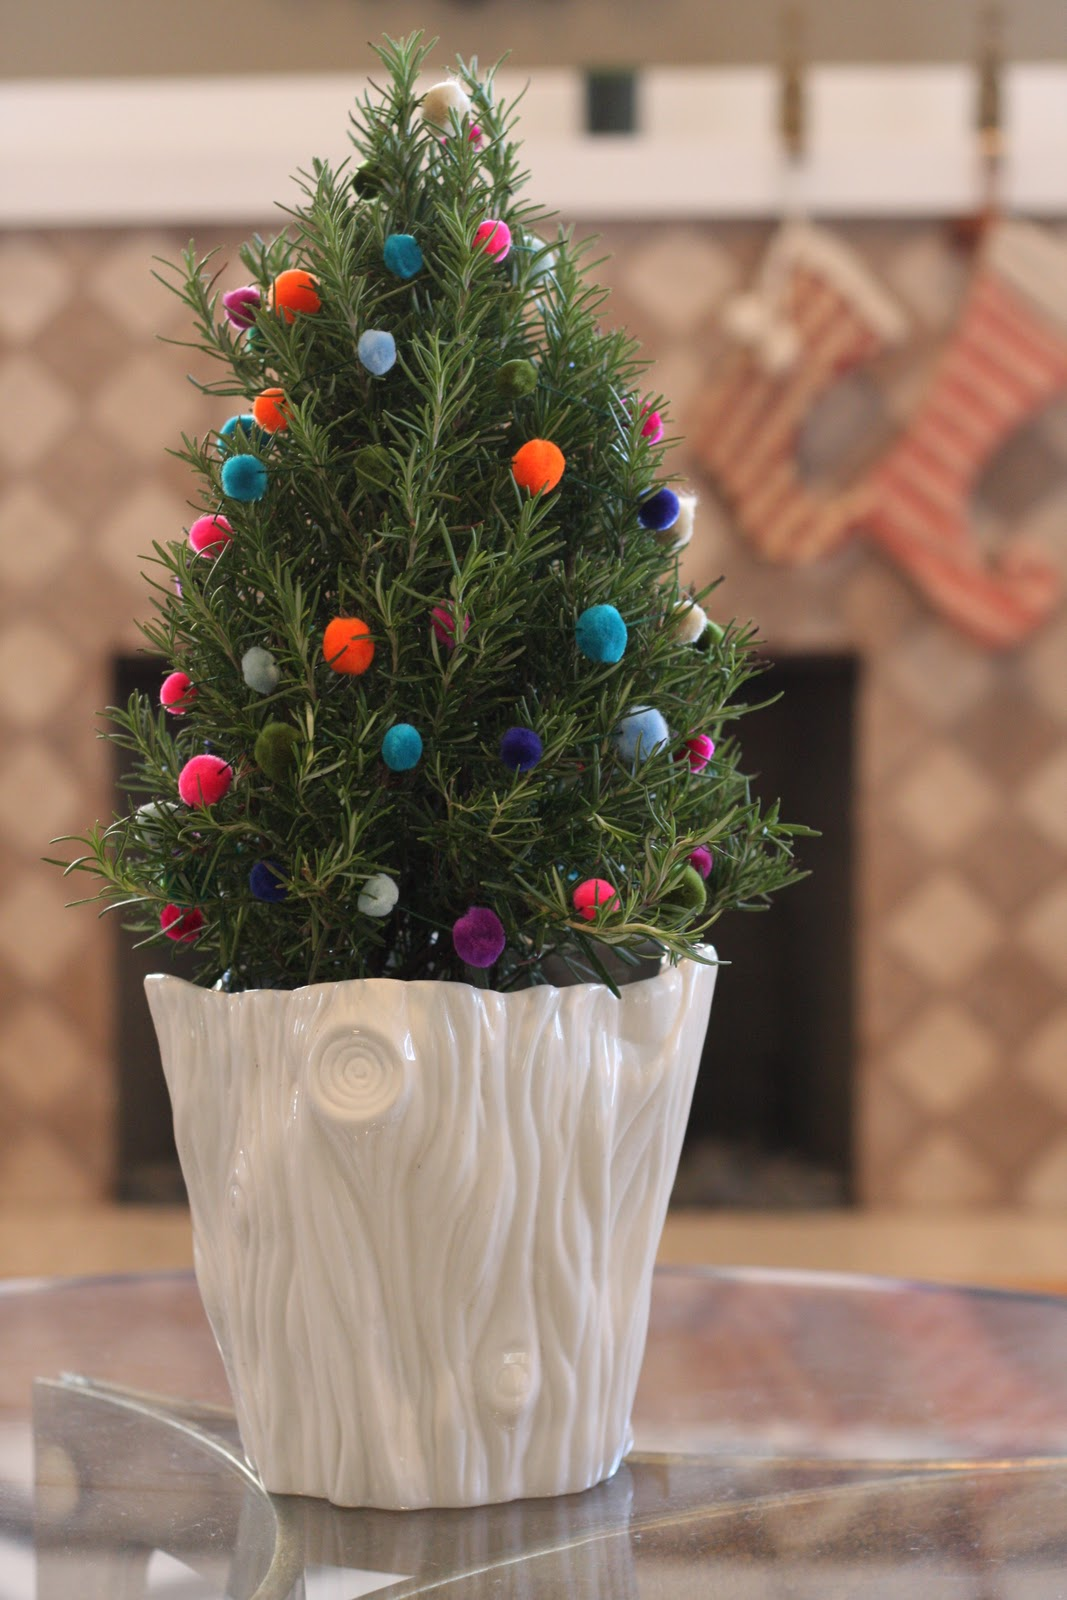 Rosemary Christmas Tree Home Depot.Christie Chase 271 Festive Pom Poms